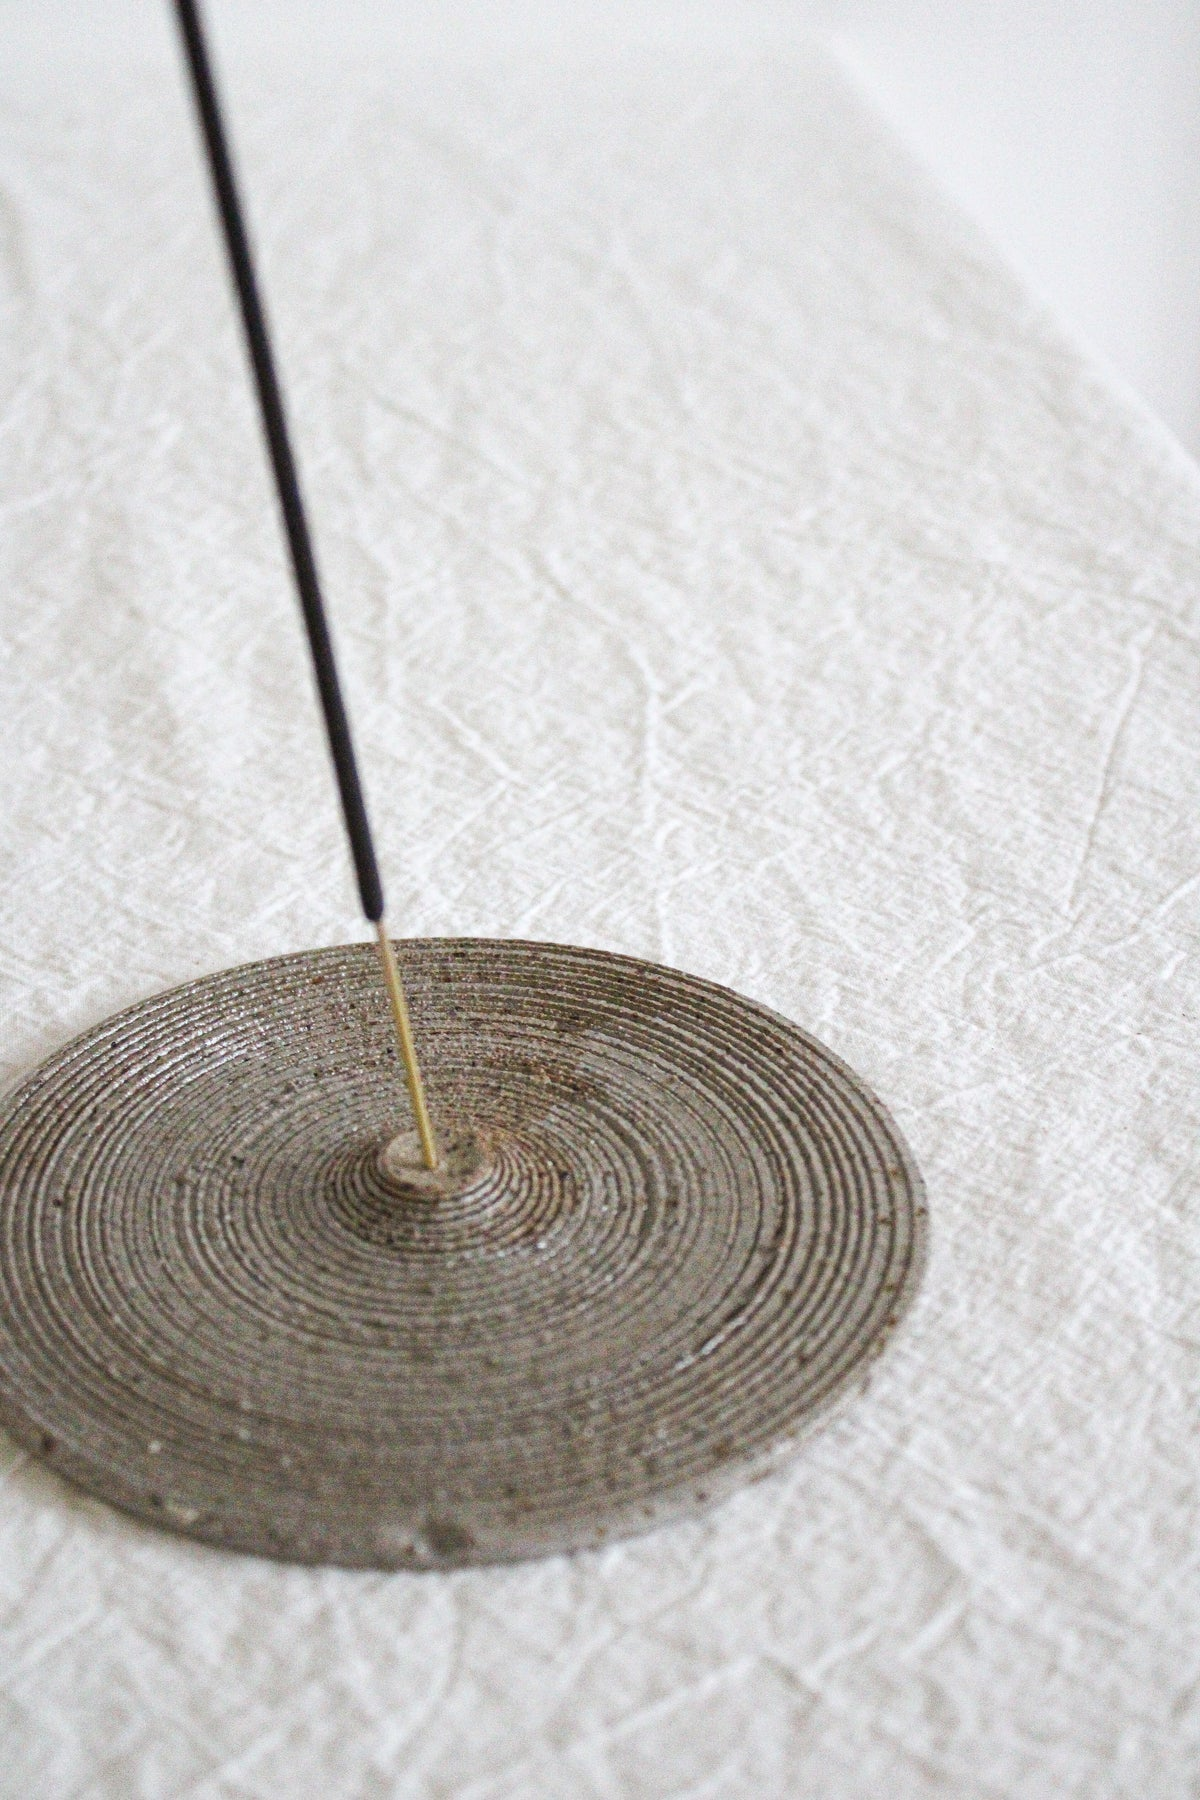 Image of textured incense holder